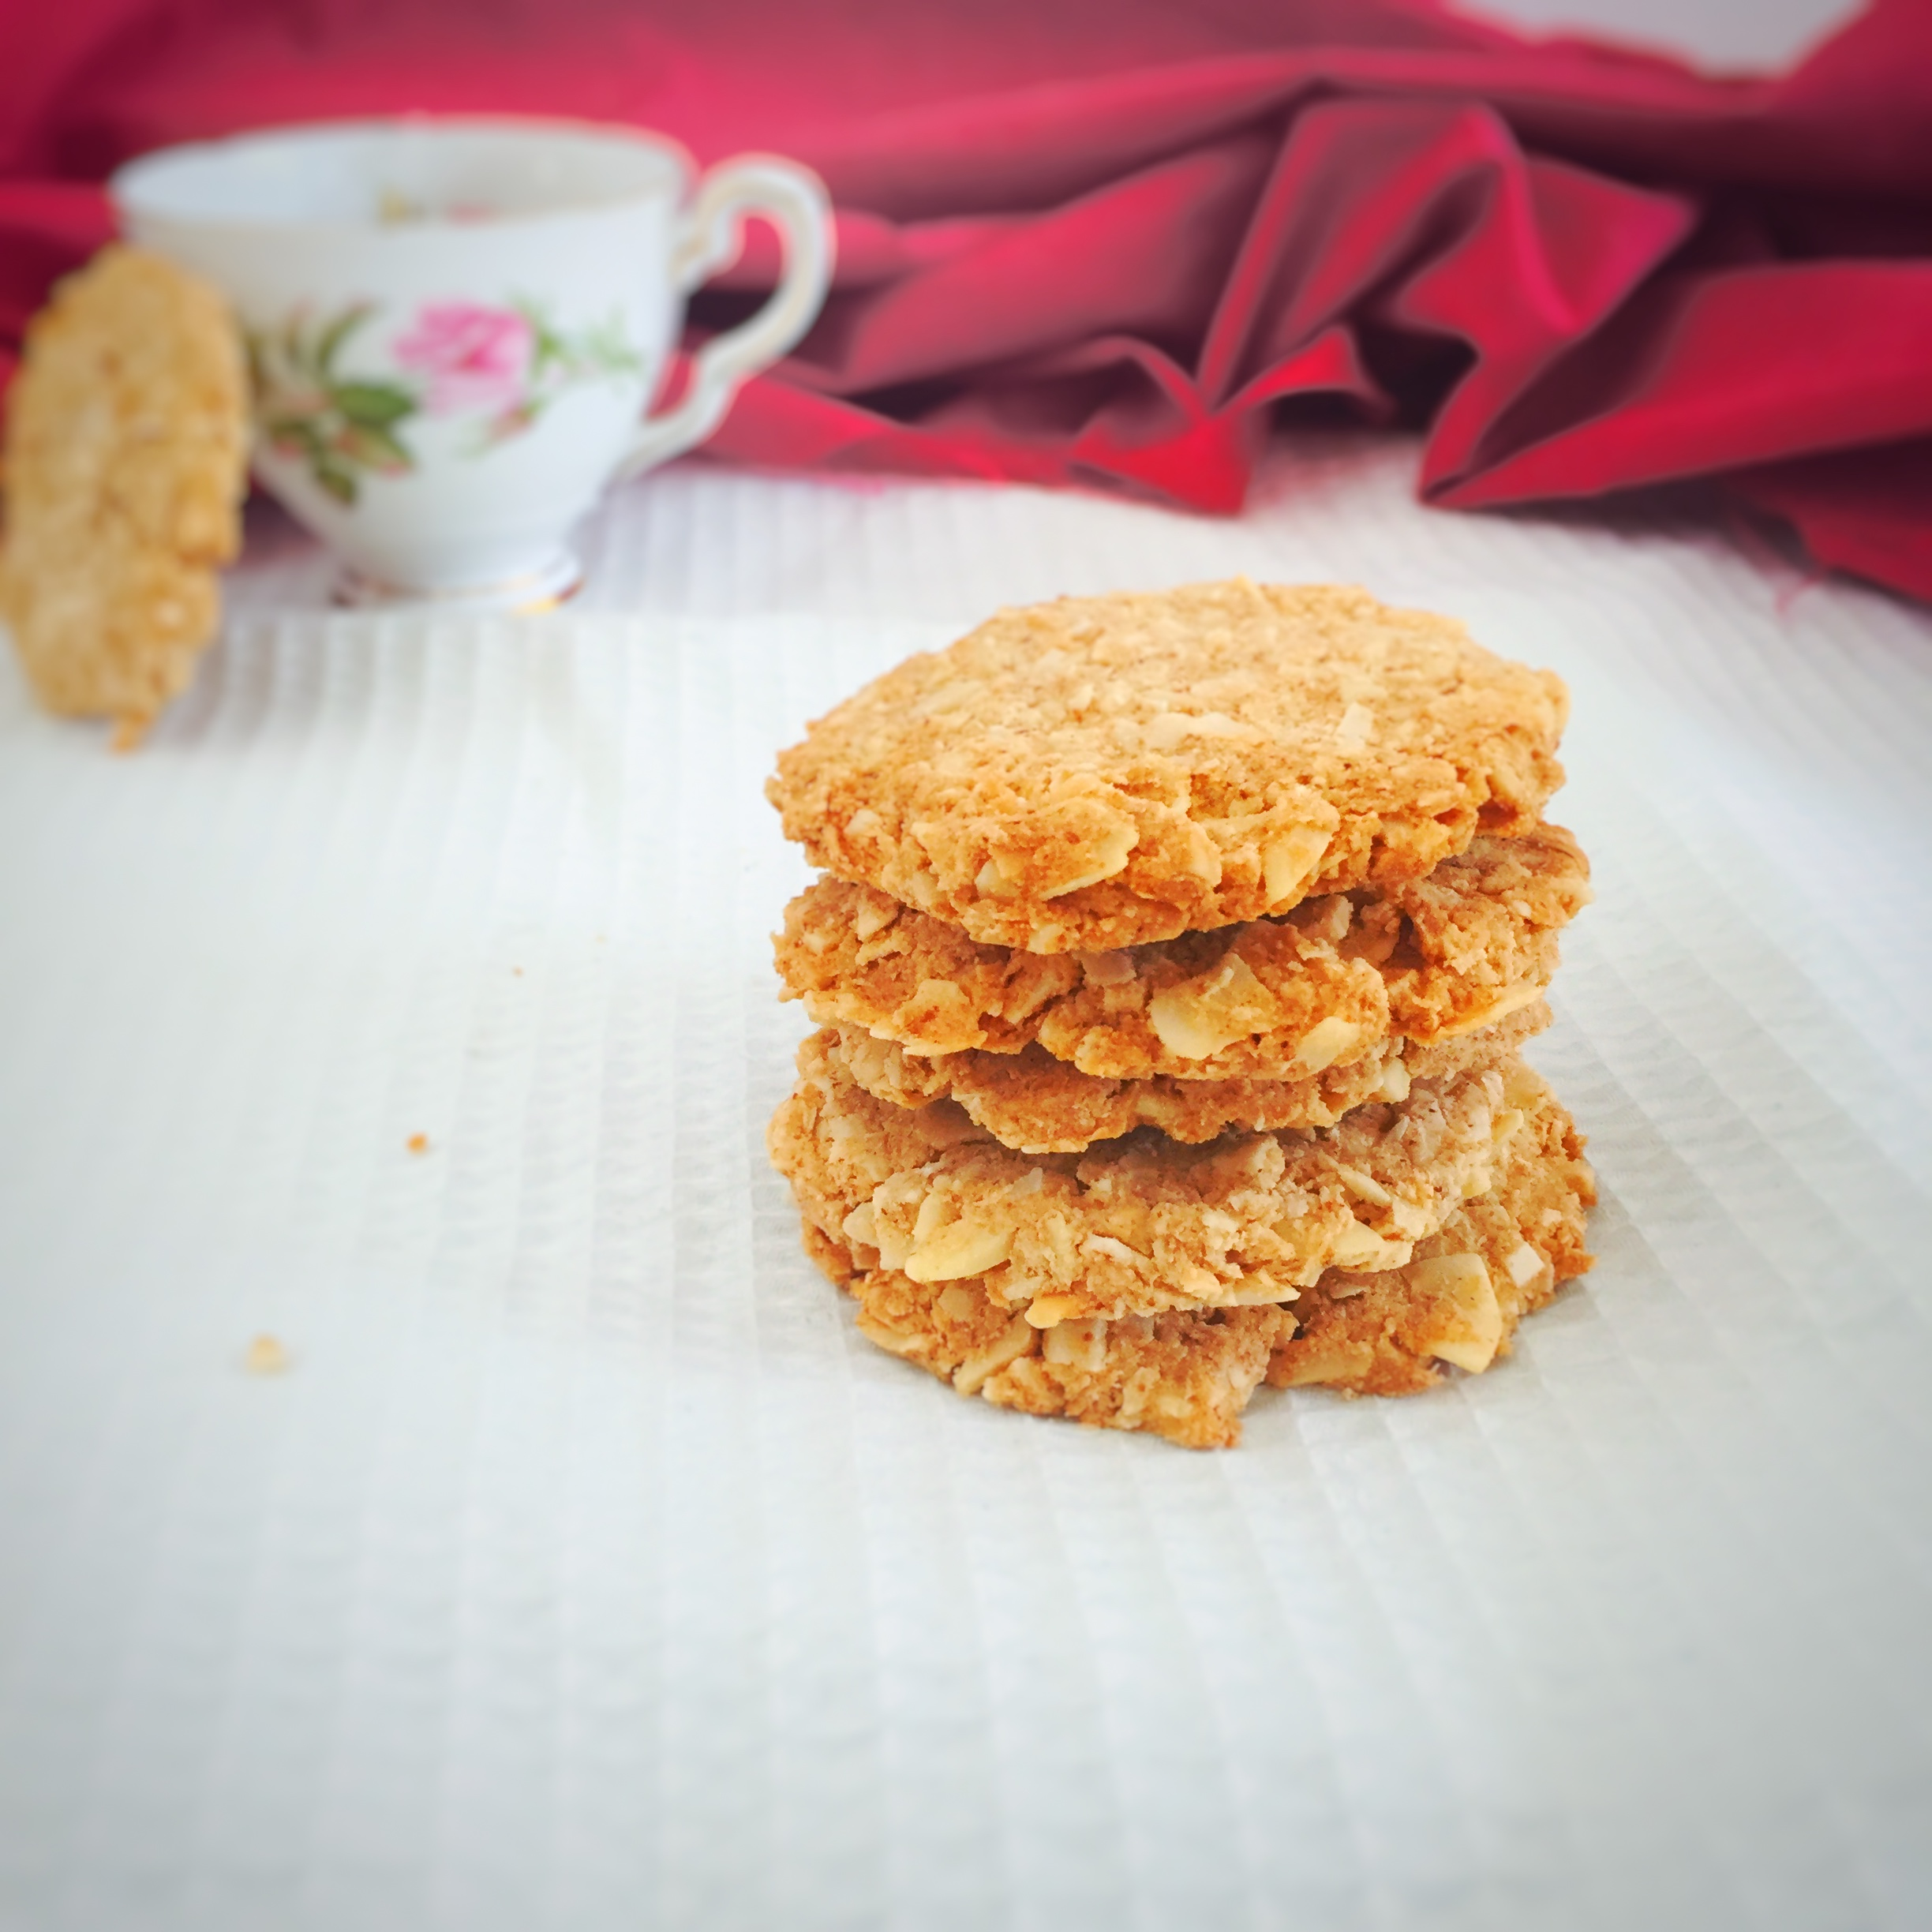 Crunchy Almond And Vanilla Biscuits The Healthy Journey Delicious Healthy Recipes Thermomix Recipes